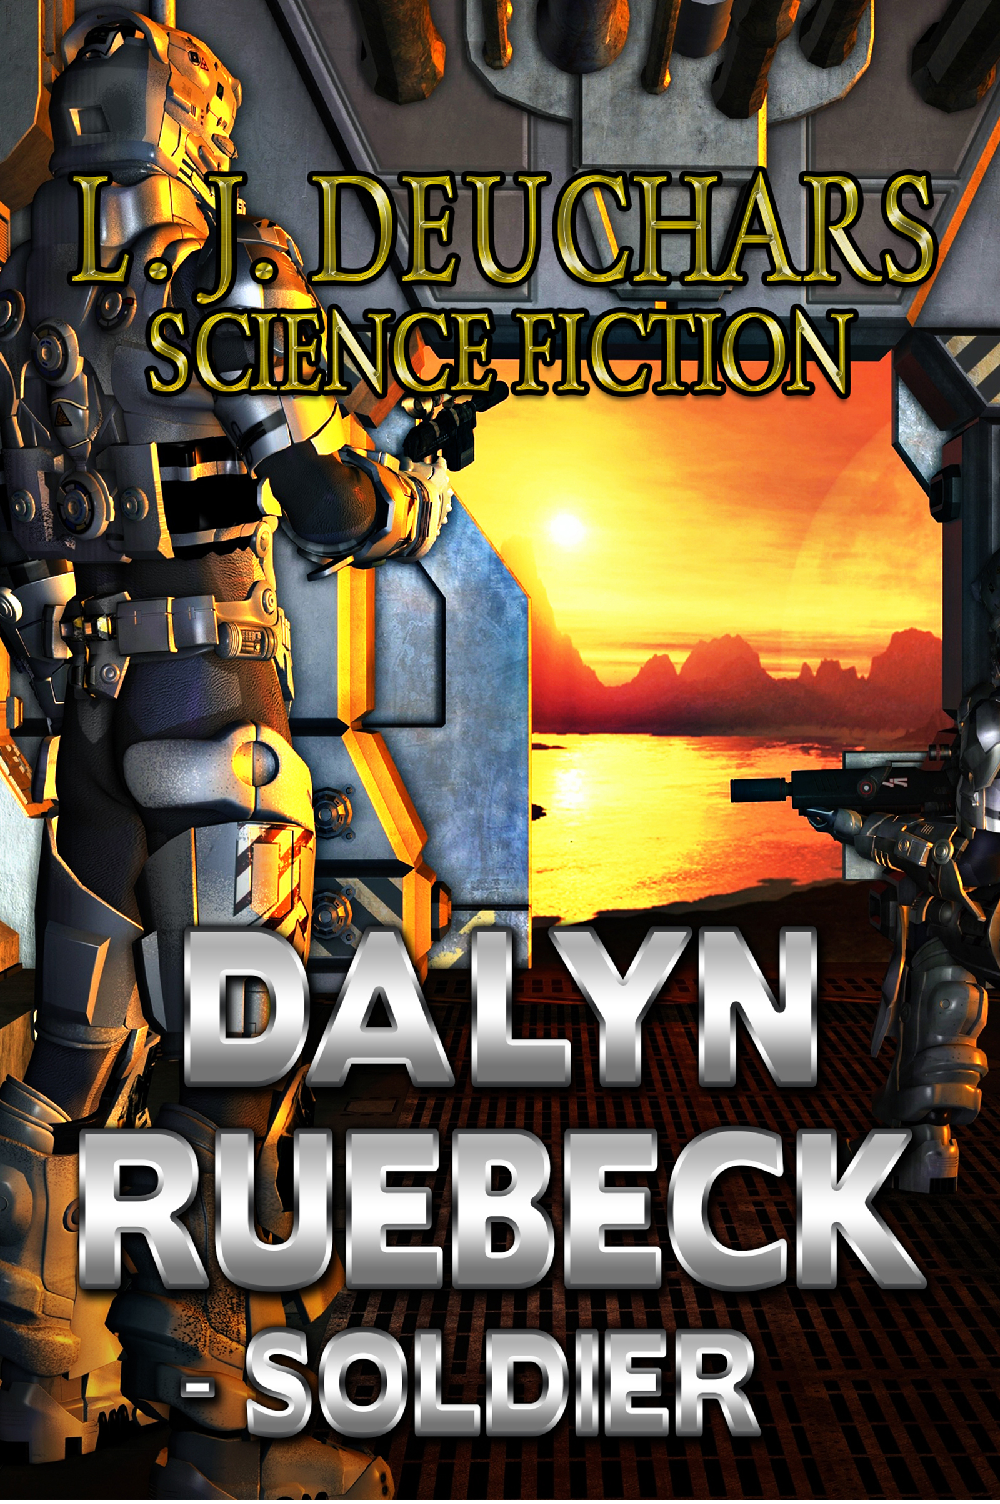 Dalyn Ruebeck Soldier